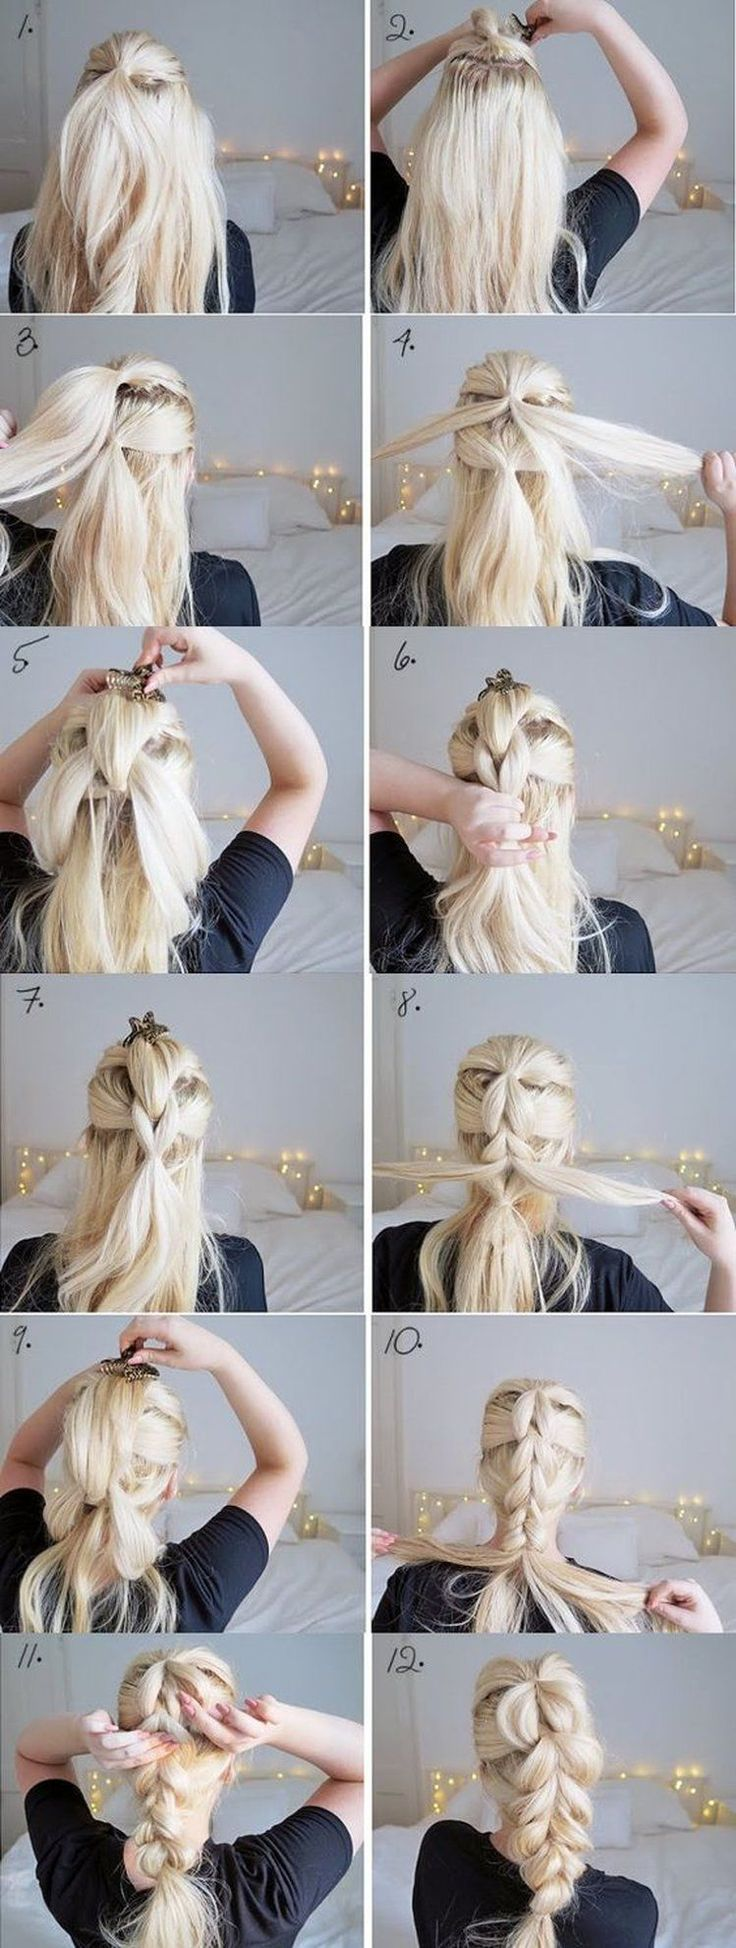 Follow these tutorials properly and make you most favorite braided hairstyle mor #girlhair